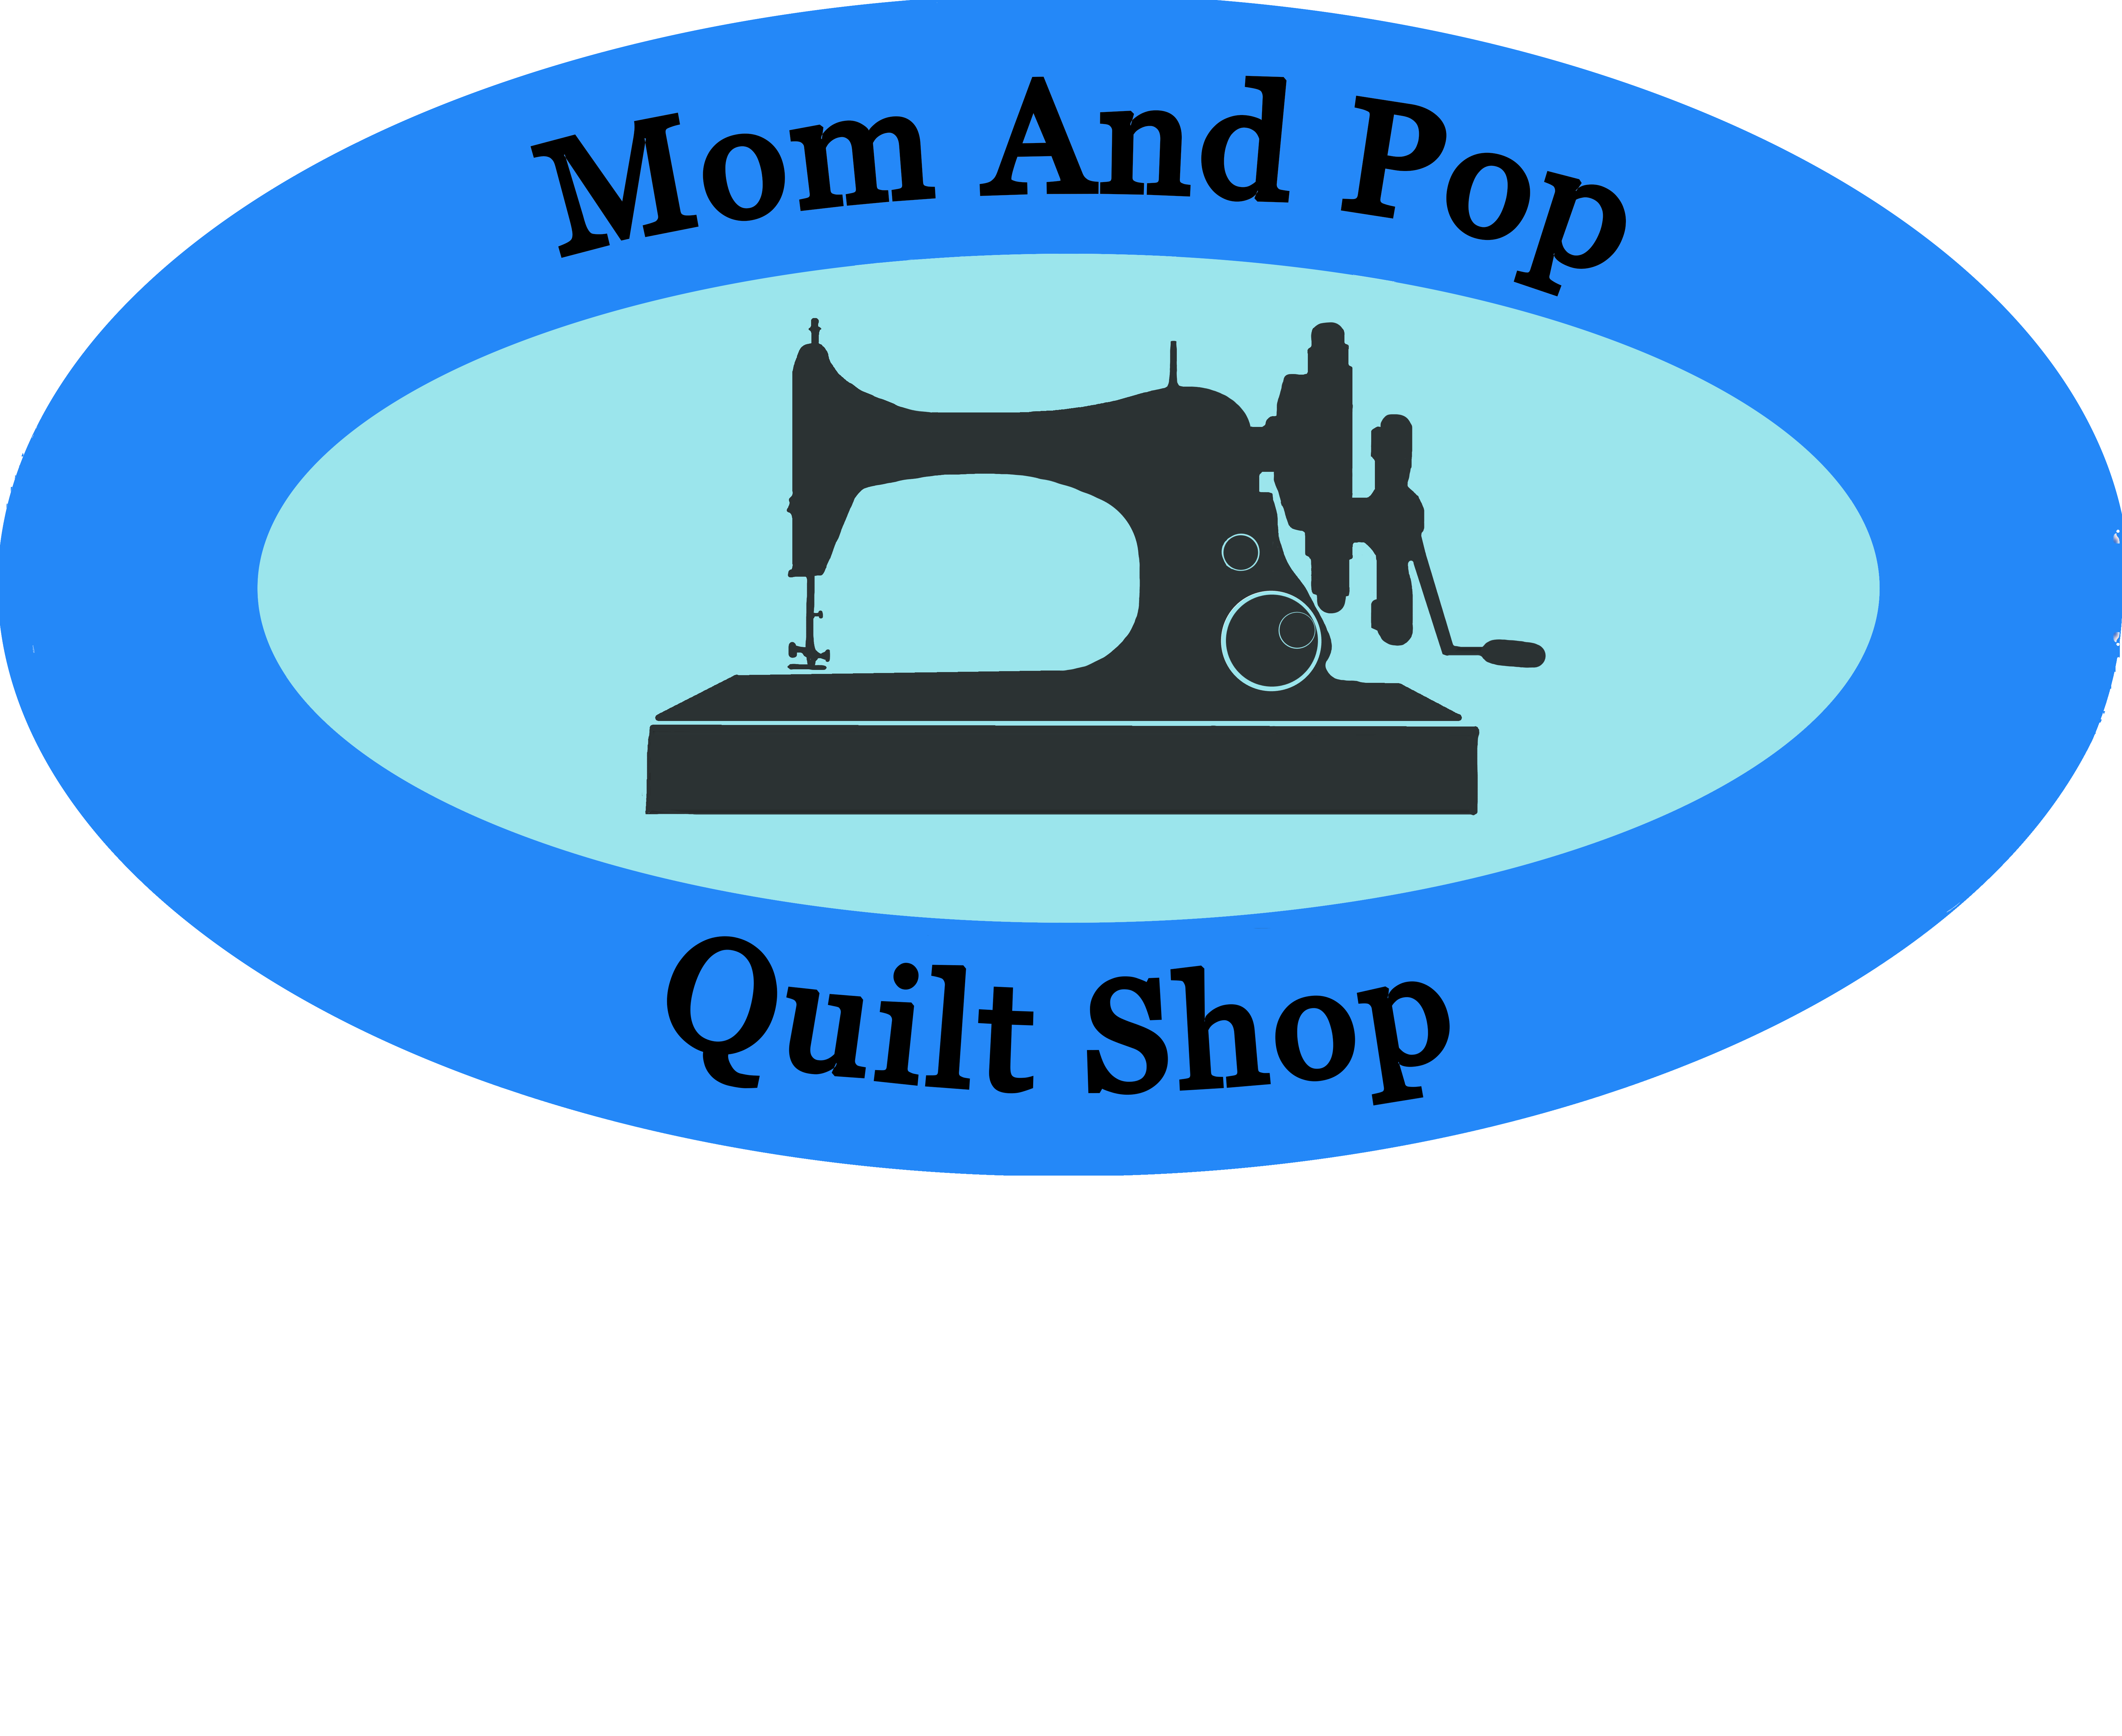 Mom and Pop Quilt Shop